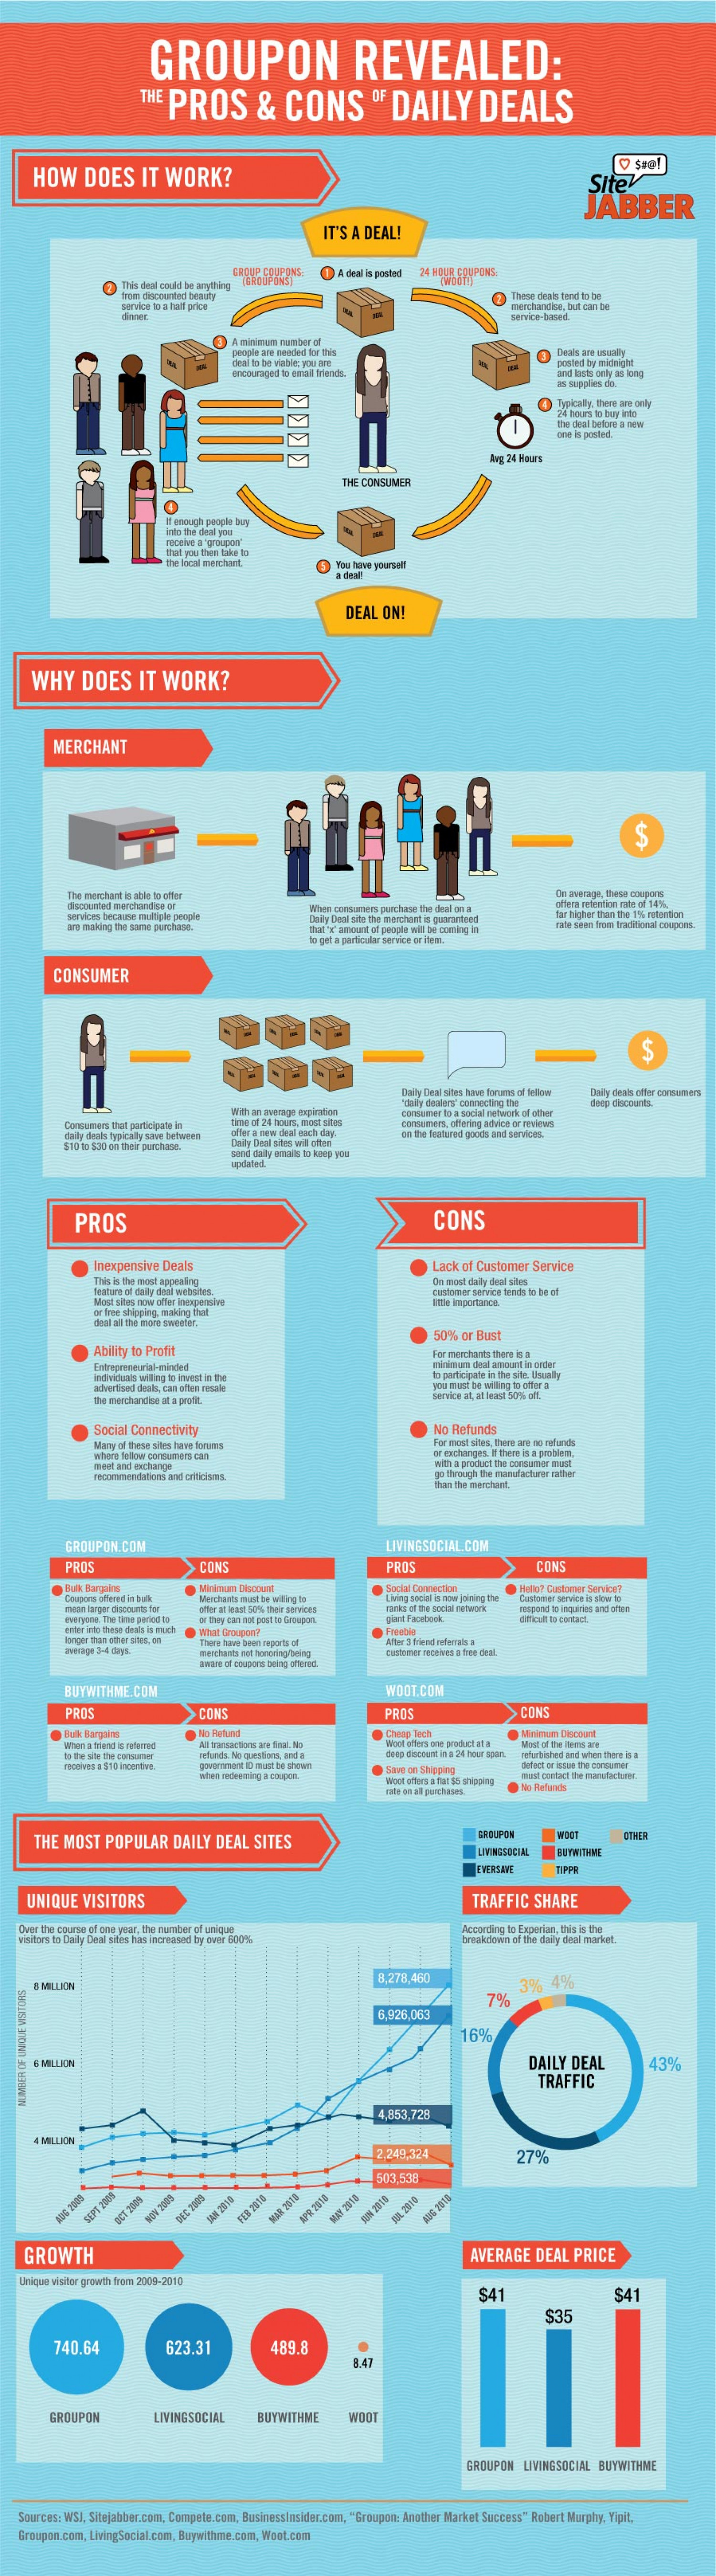 Groupon Revealed: The Pros and Cons of Daily Deals Infographic